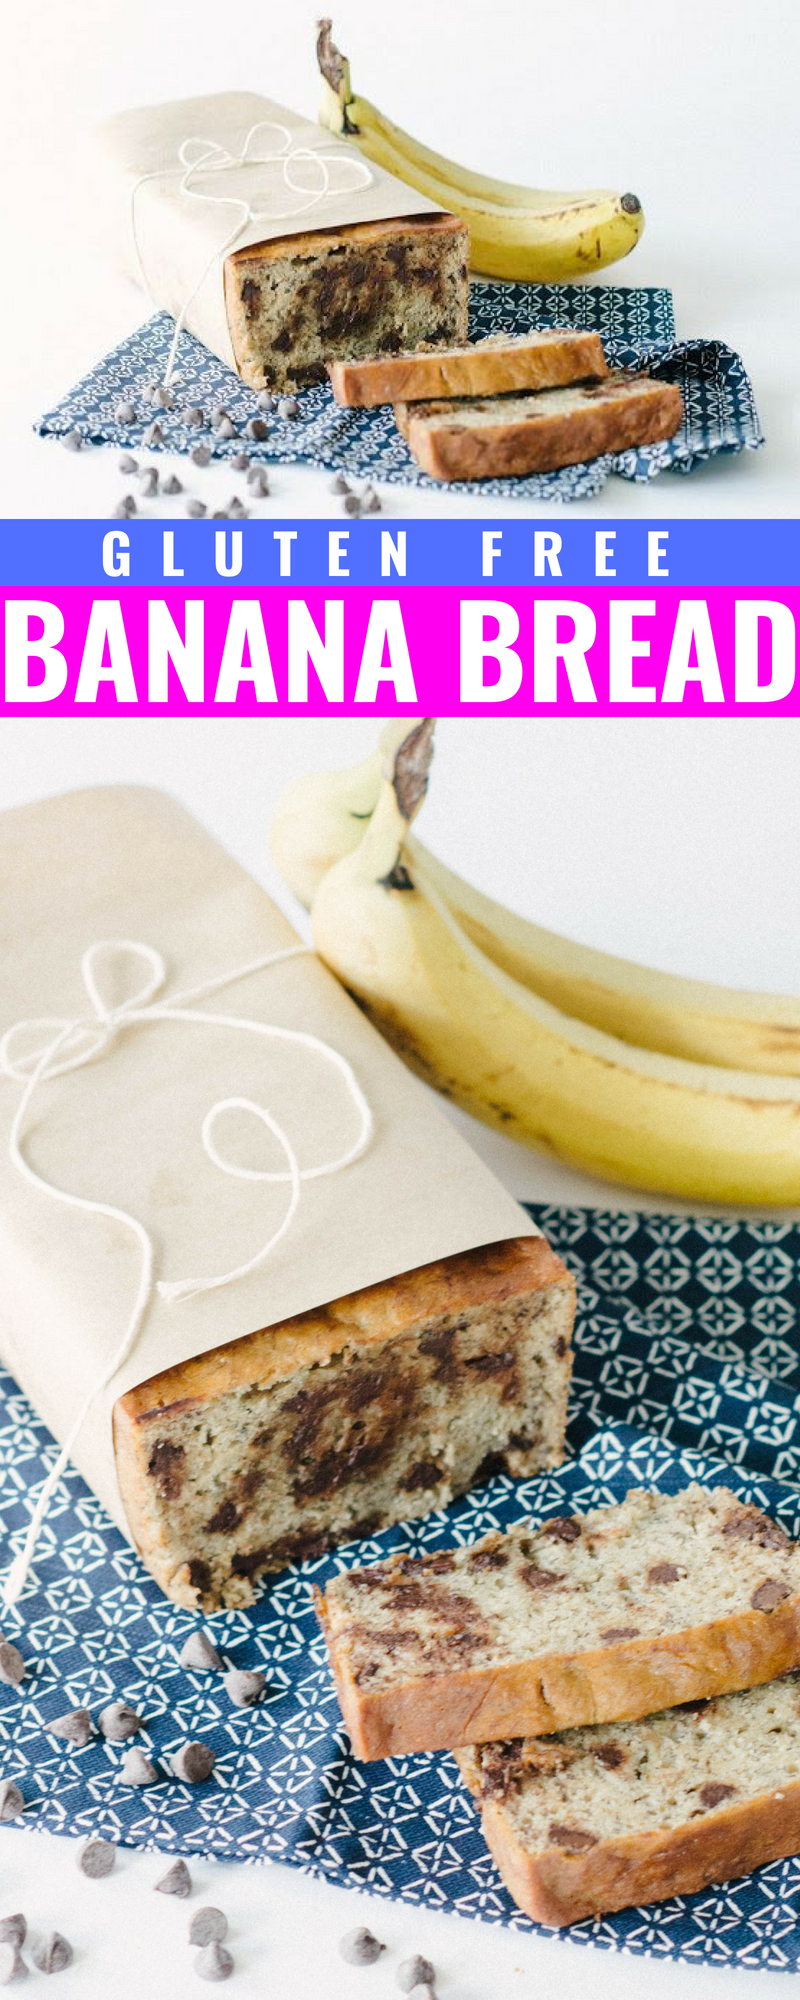 Best Ever Gluten Free Banana Bread - Gluten Free Banana Bread - Banana Bread With Chocolate Chips - GF Banana Bread - GF Dessert - GF Breakfast - How to Make Gluten Free Banana Bread - Easy Gluten Free Banana Bread - Communikait by Kait Hanson #glutenfreebananabread #bananabread #glutenfreebreakfast #breakfast #bananabread #recipe